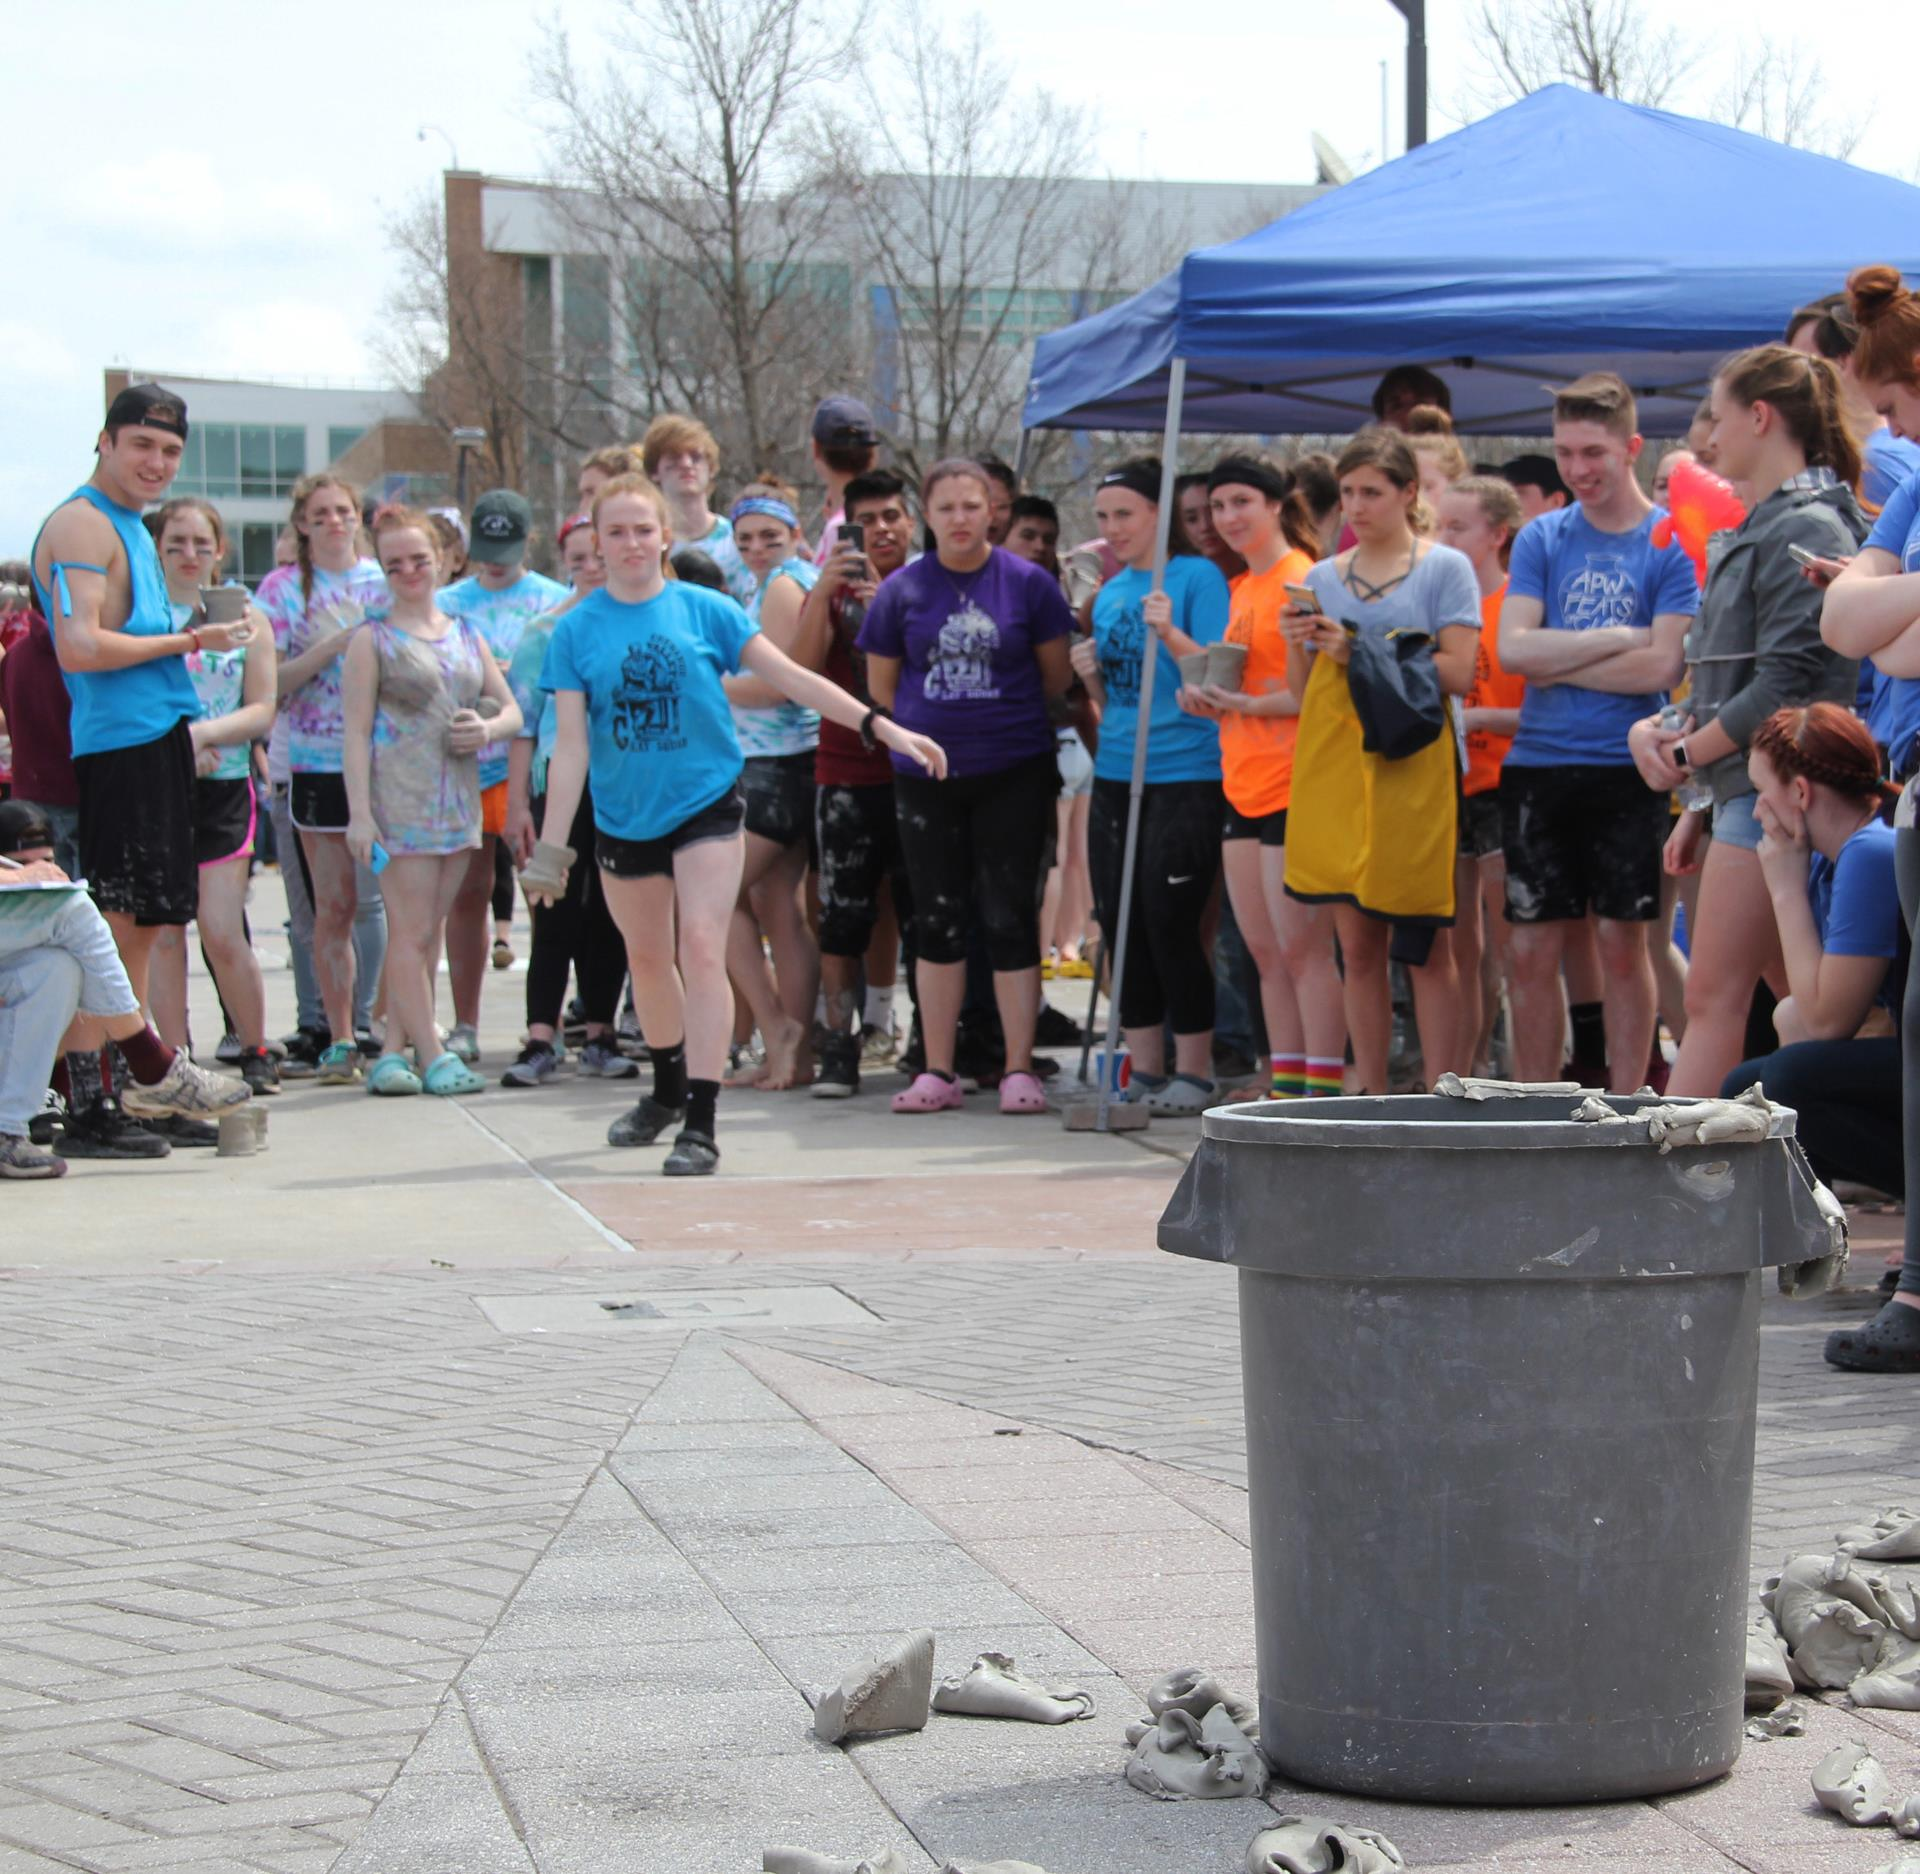 student throwing mug in pot put event